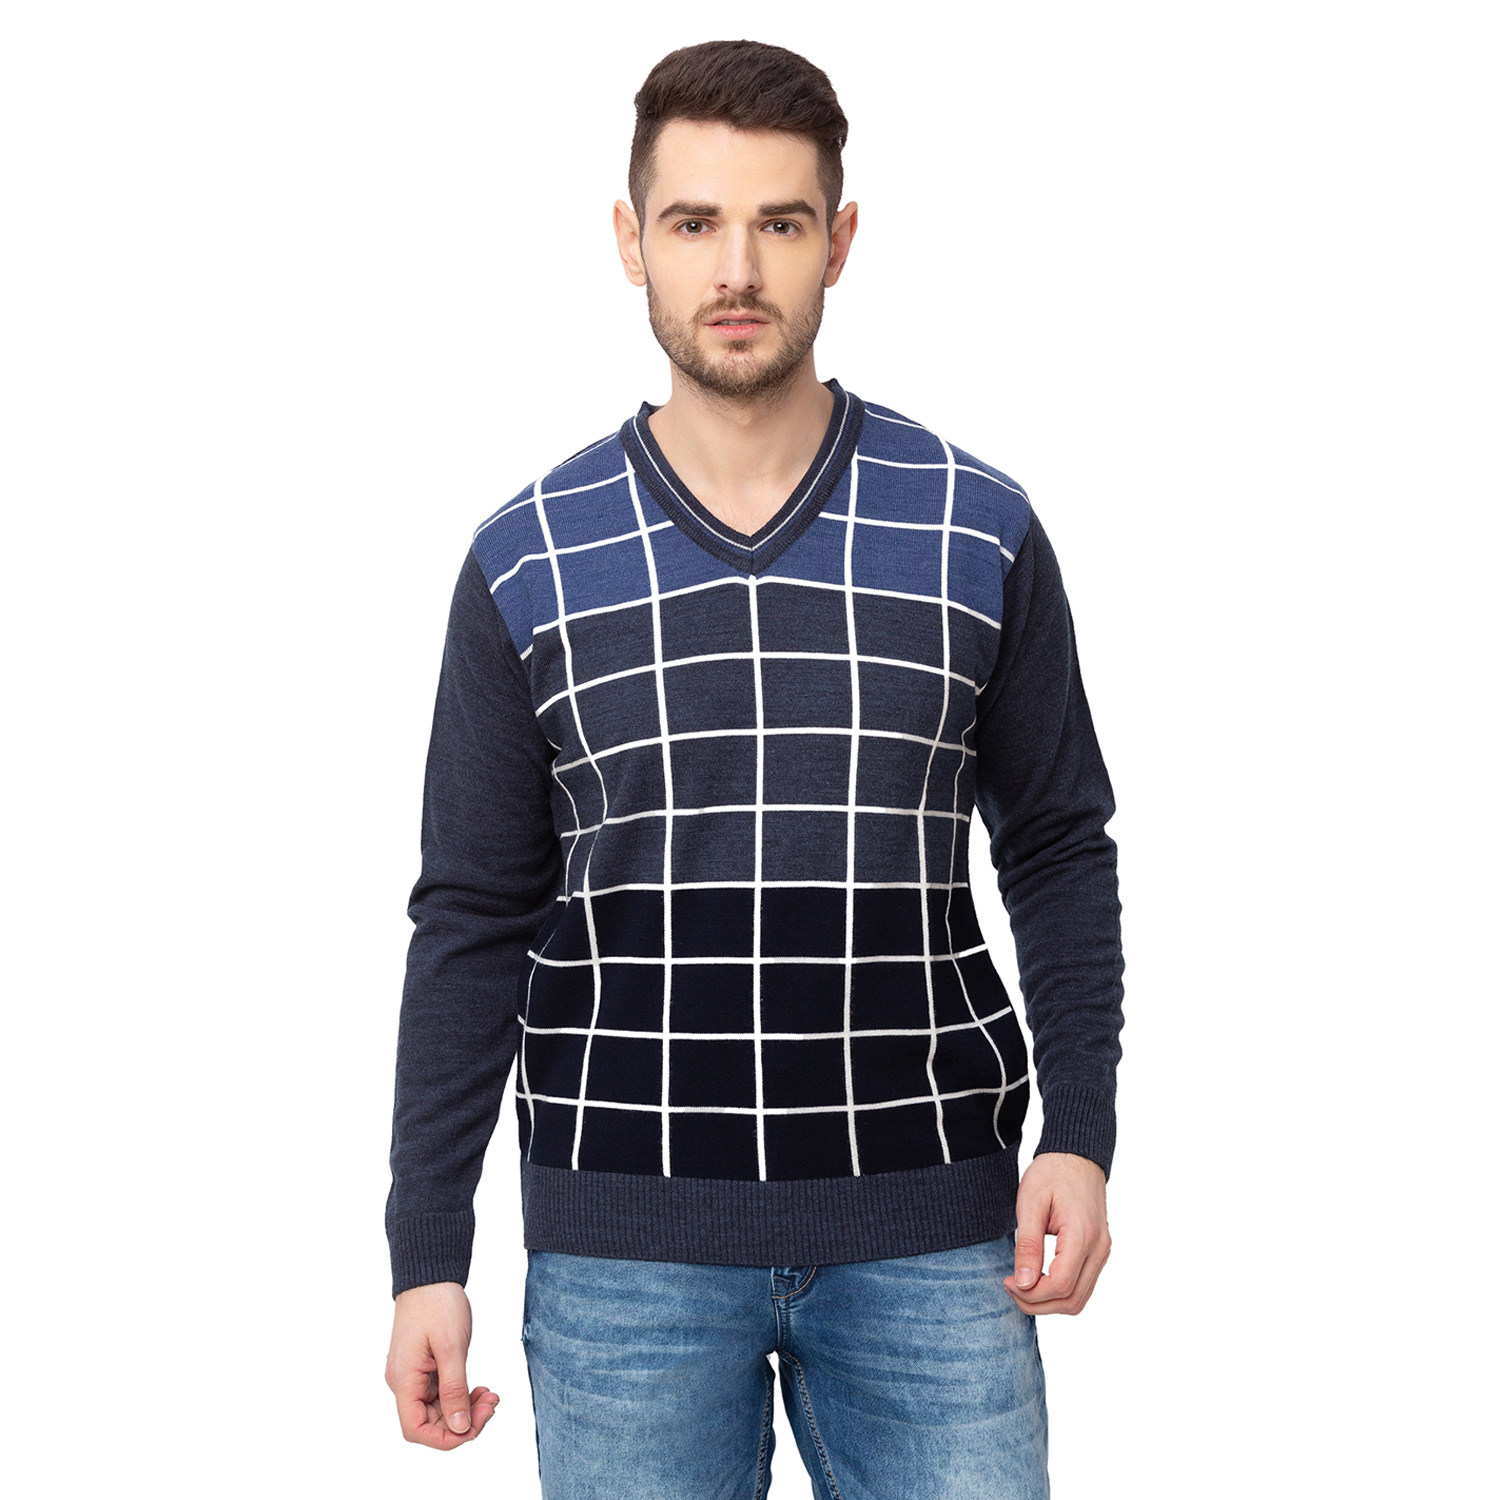 globus | Globus Navy Blue Checked Pullover Sweater